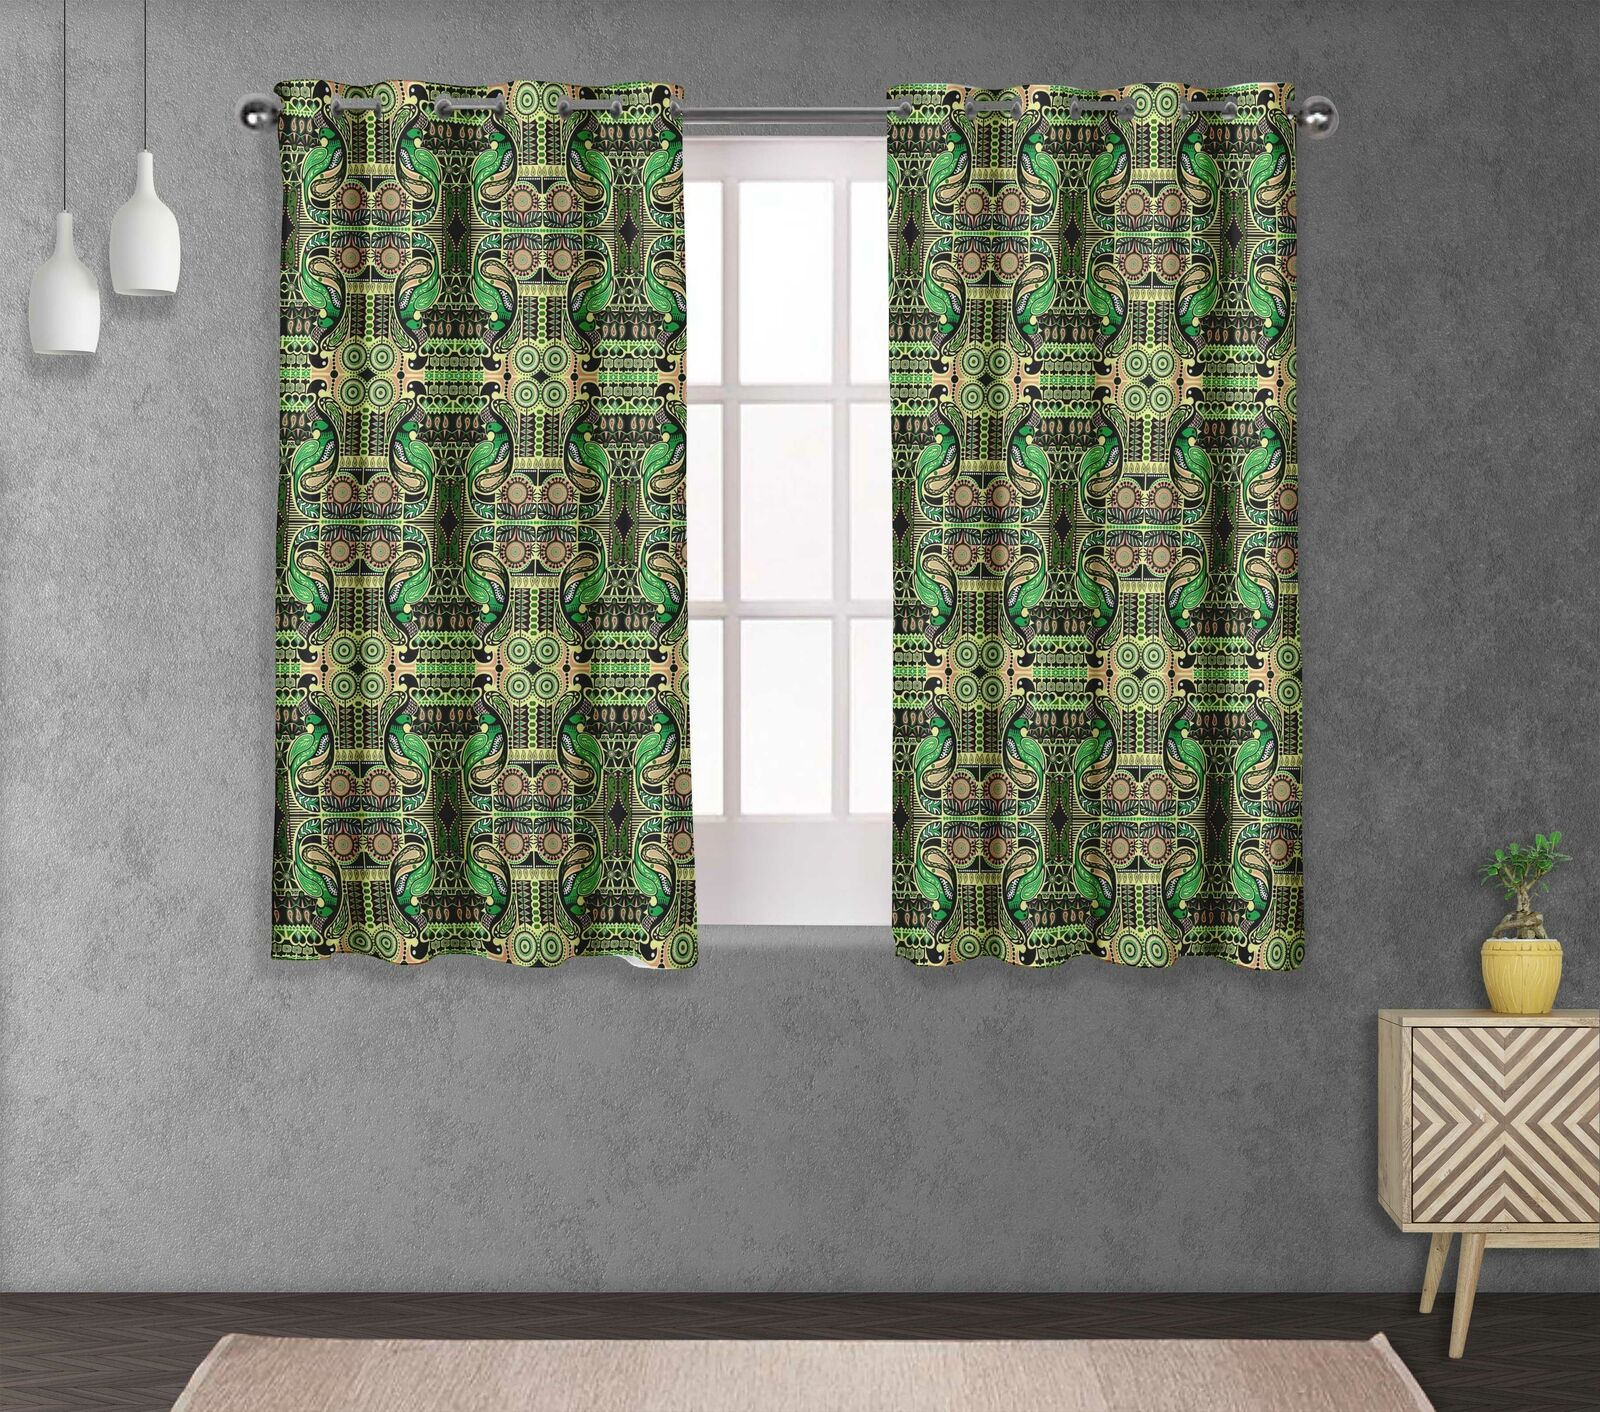 S4sassy Bird & Printed Eyelet short & long Window Panel Curtains -PSL-8B